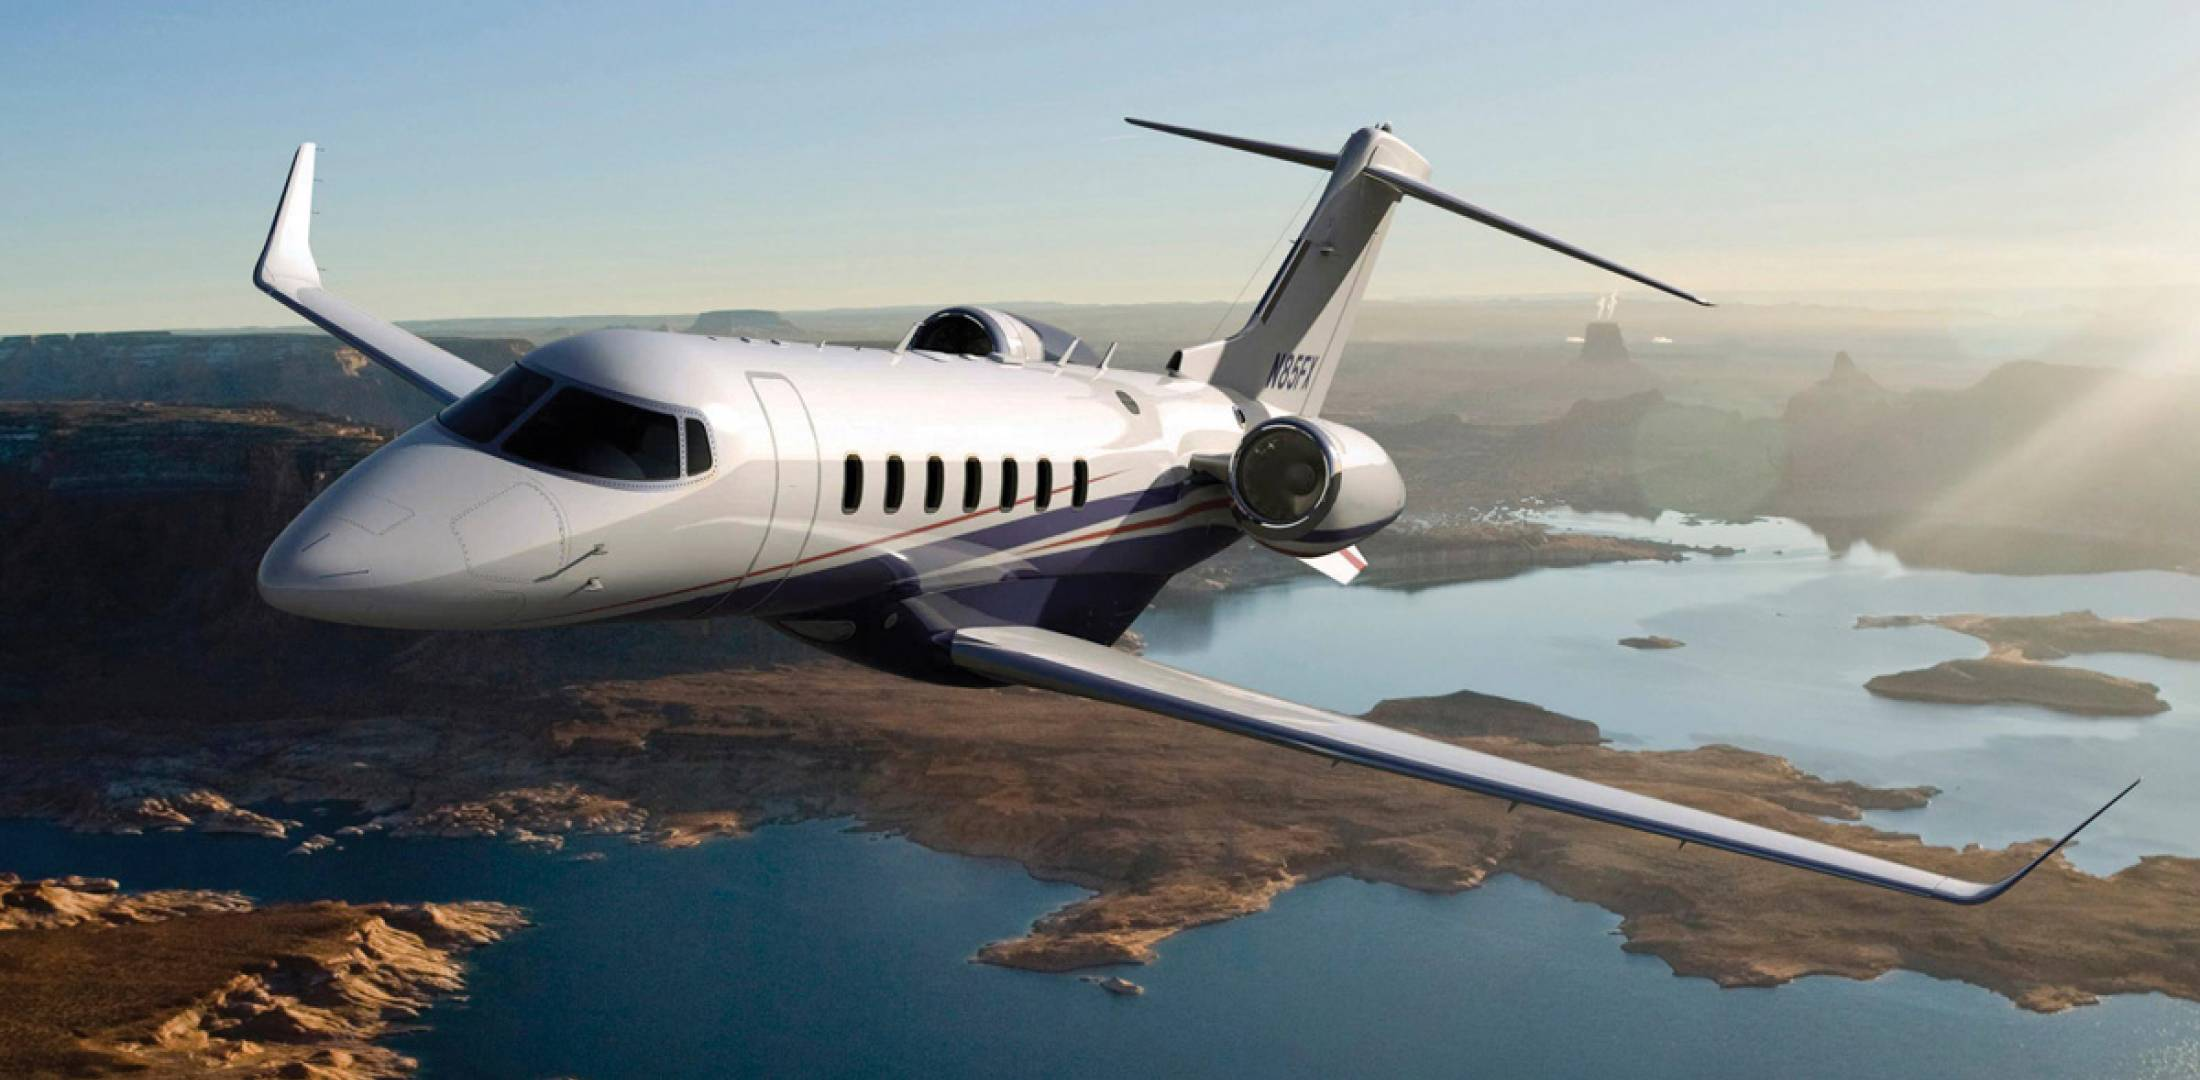 When the still-developing Learjet 85 joins its forebears, its designers expect it will continue Bill Lear's vision of creating a beautiful aircraft that outperforms the competition.